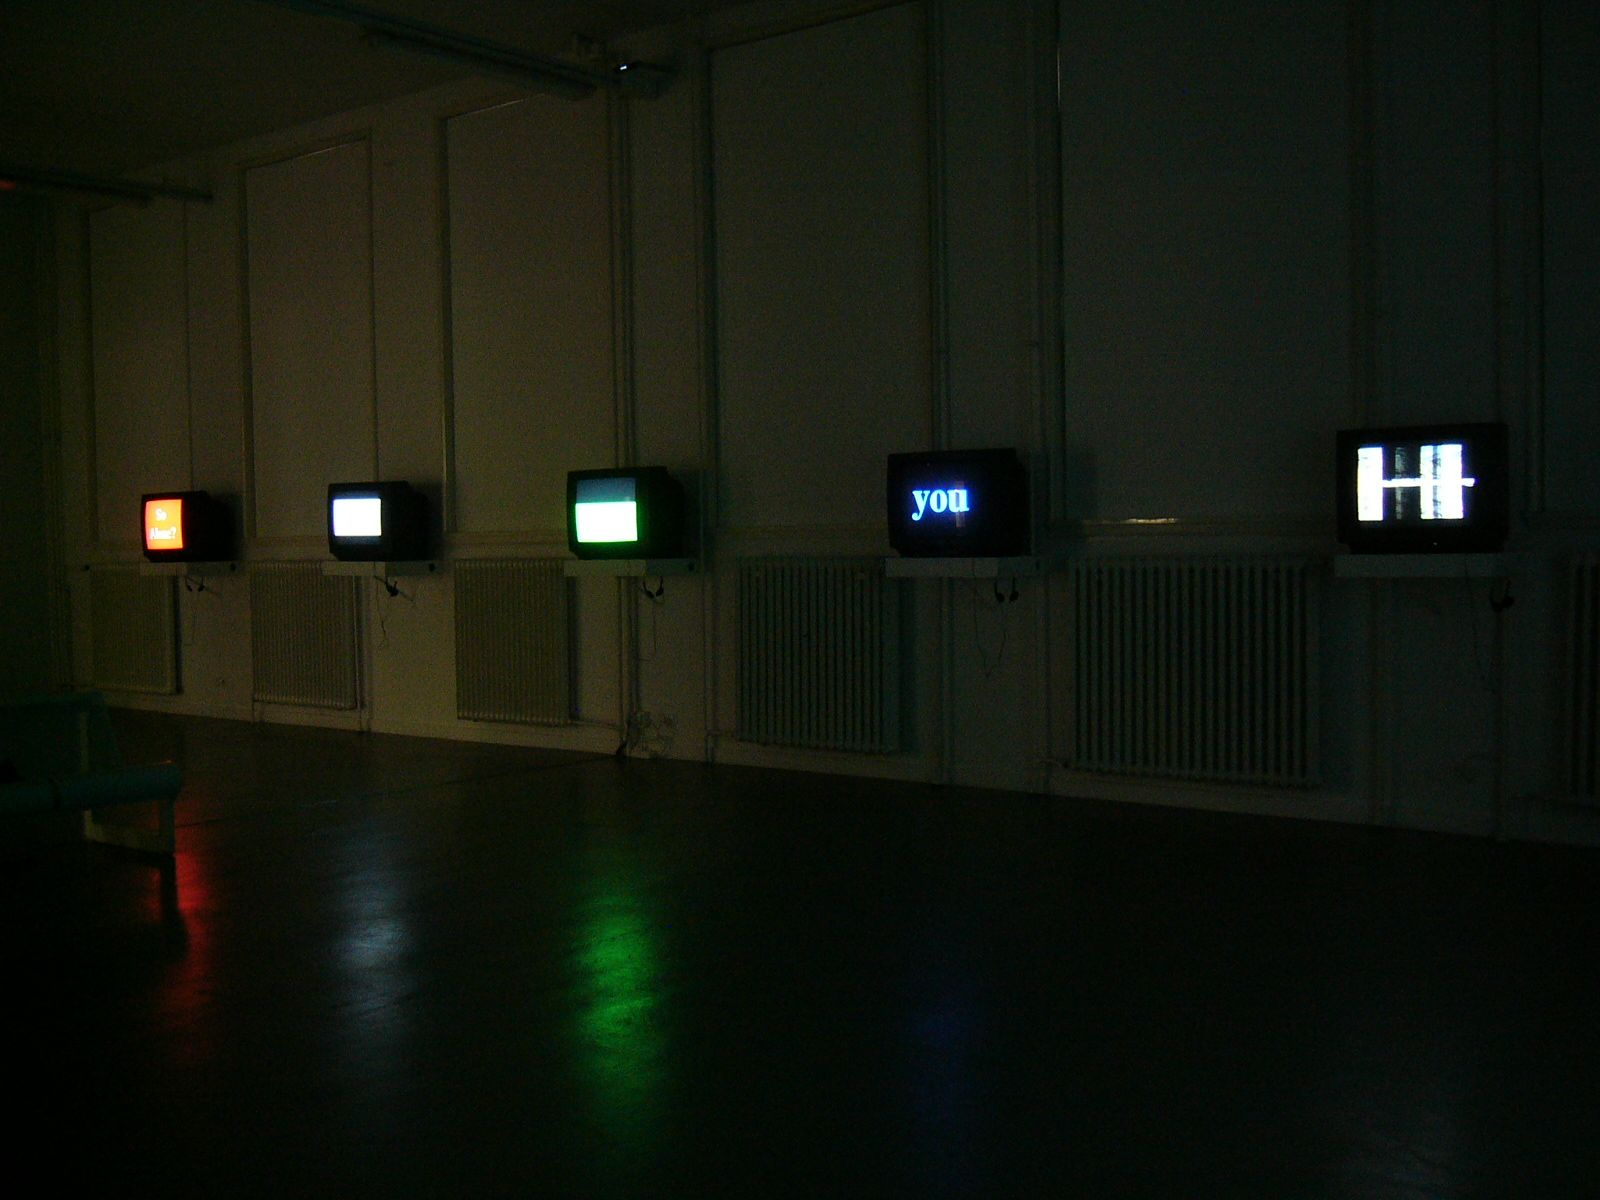 Installation view, Pop Manifestos in MurMur, curated by Edwin Carels, TENT, Rotterdam, The Netherlands, 2005